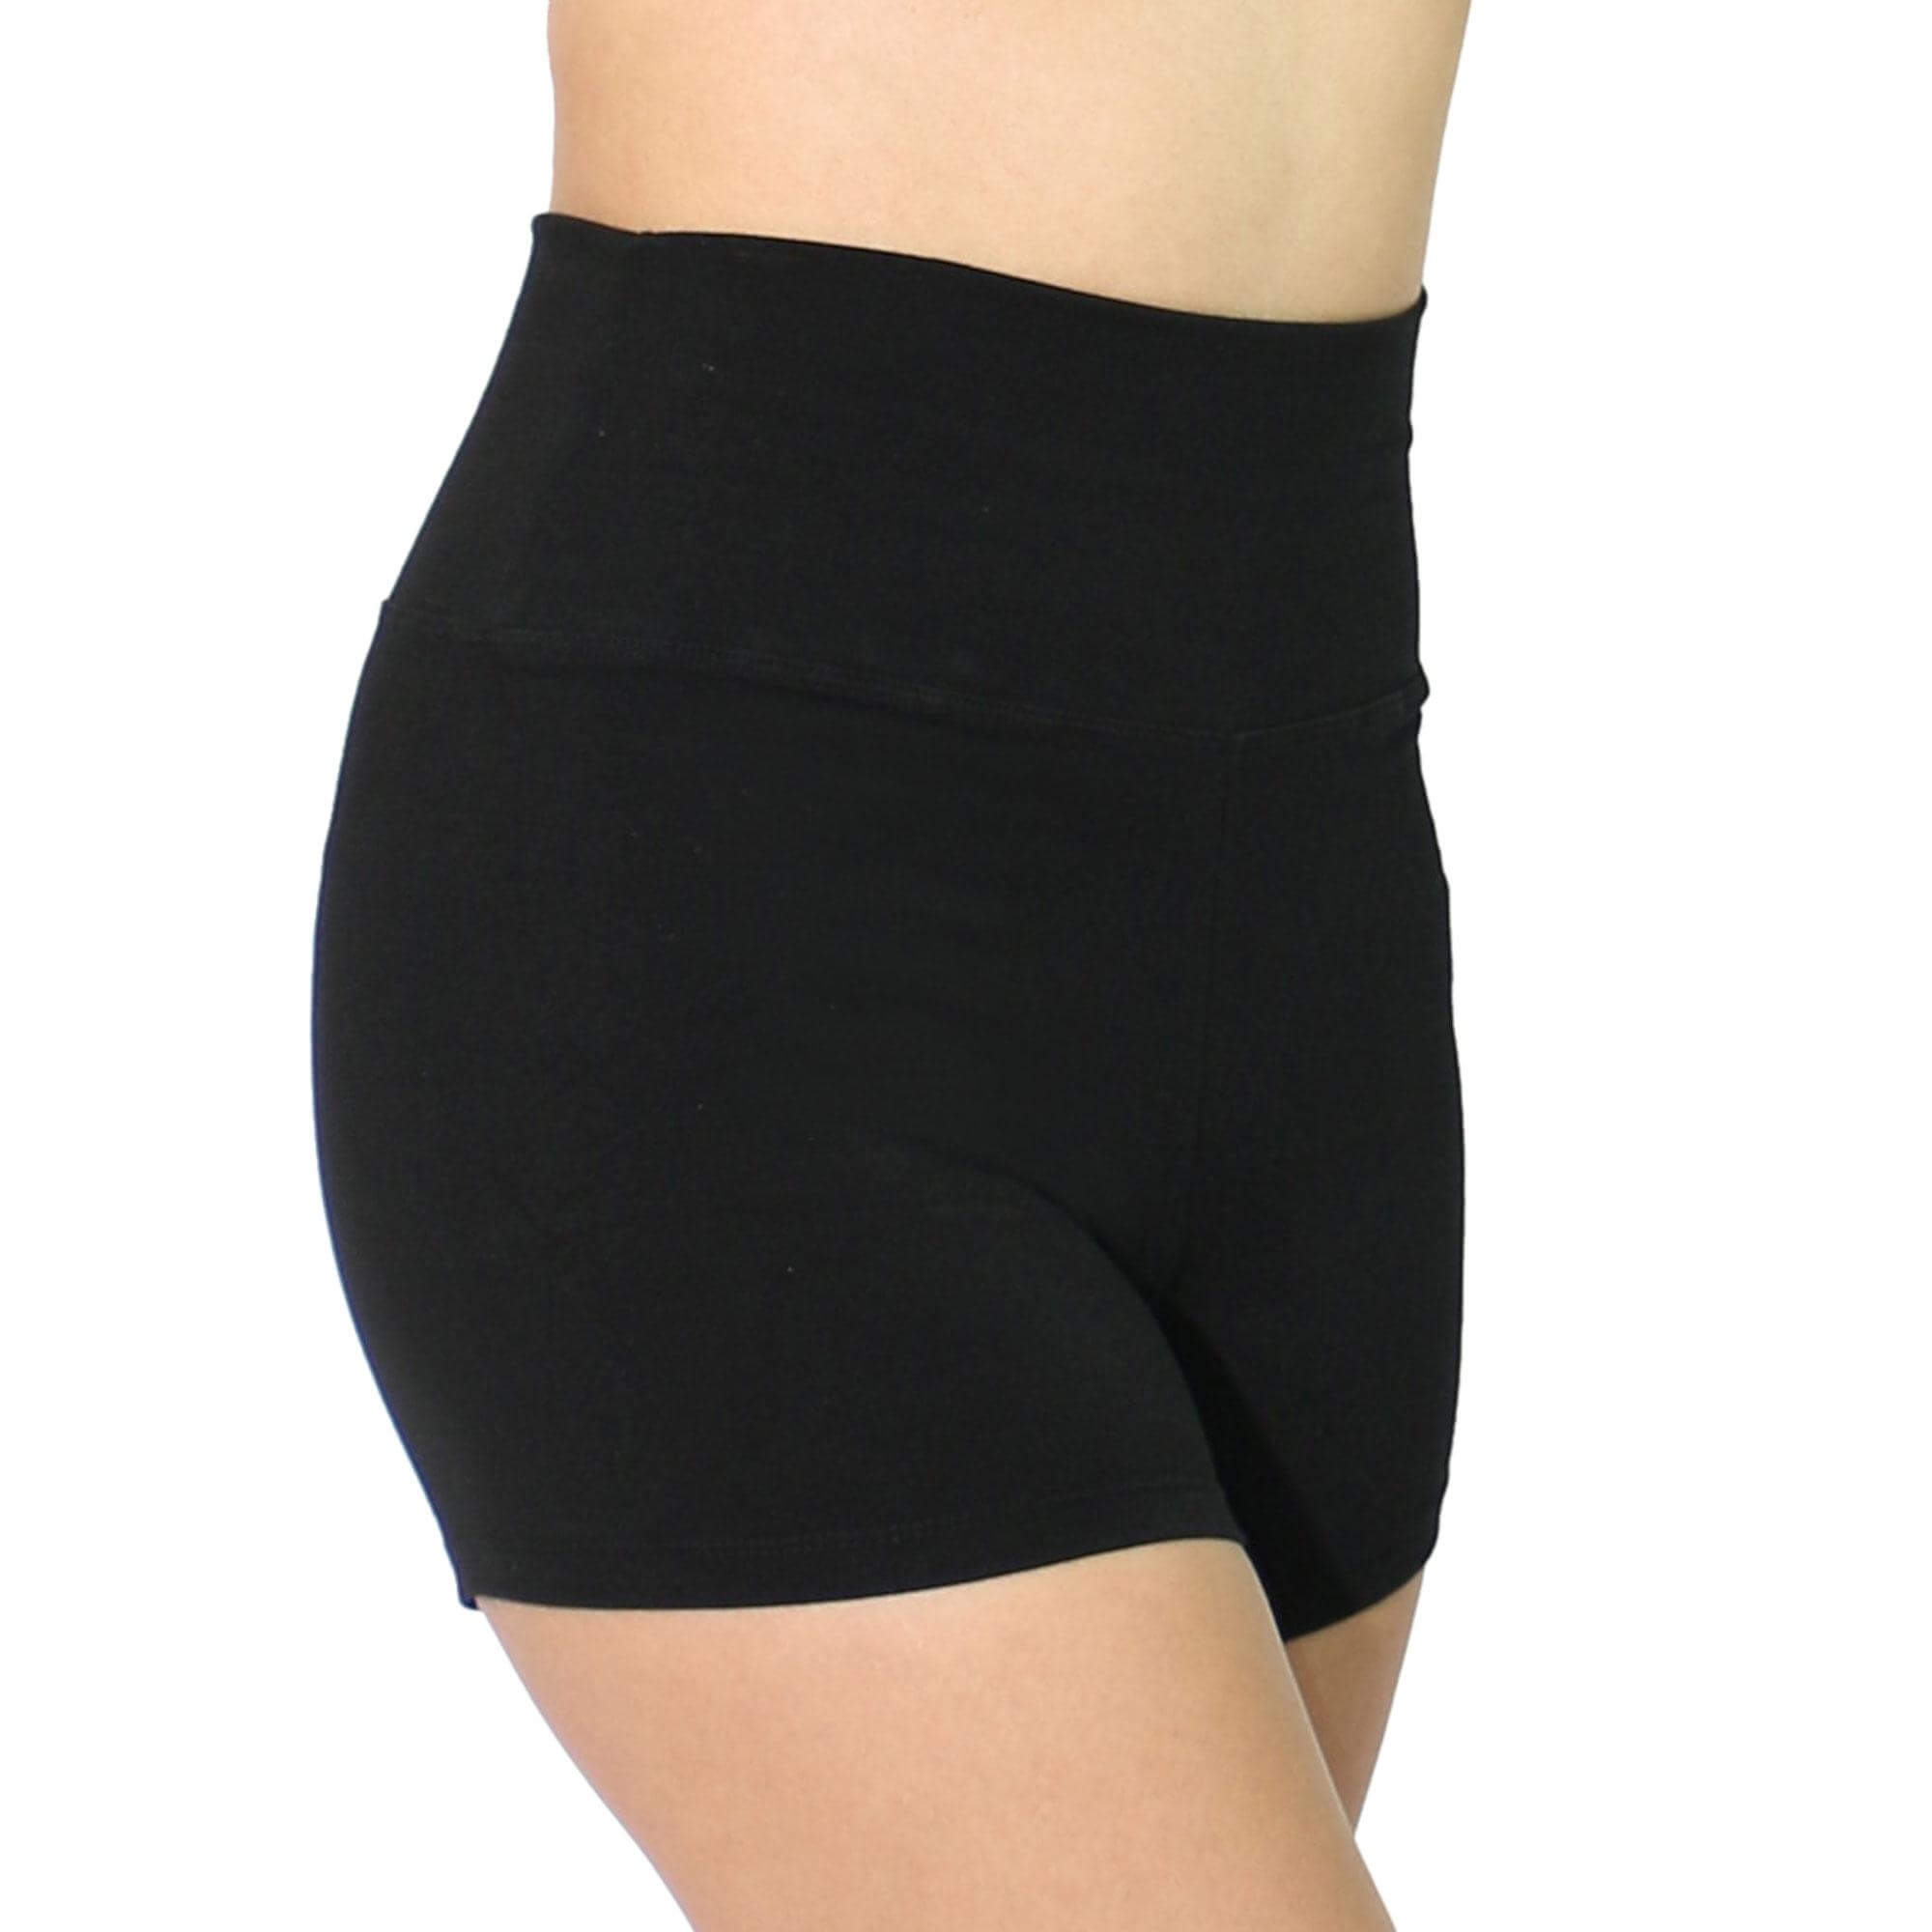 Danzcue Adult High Waist Jazz Short